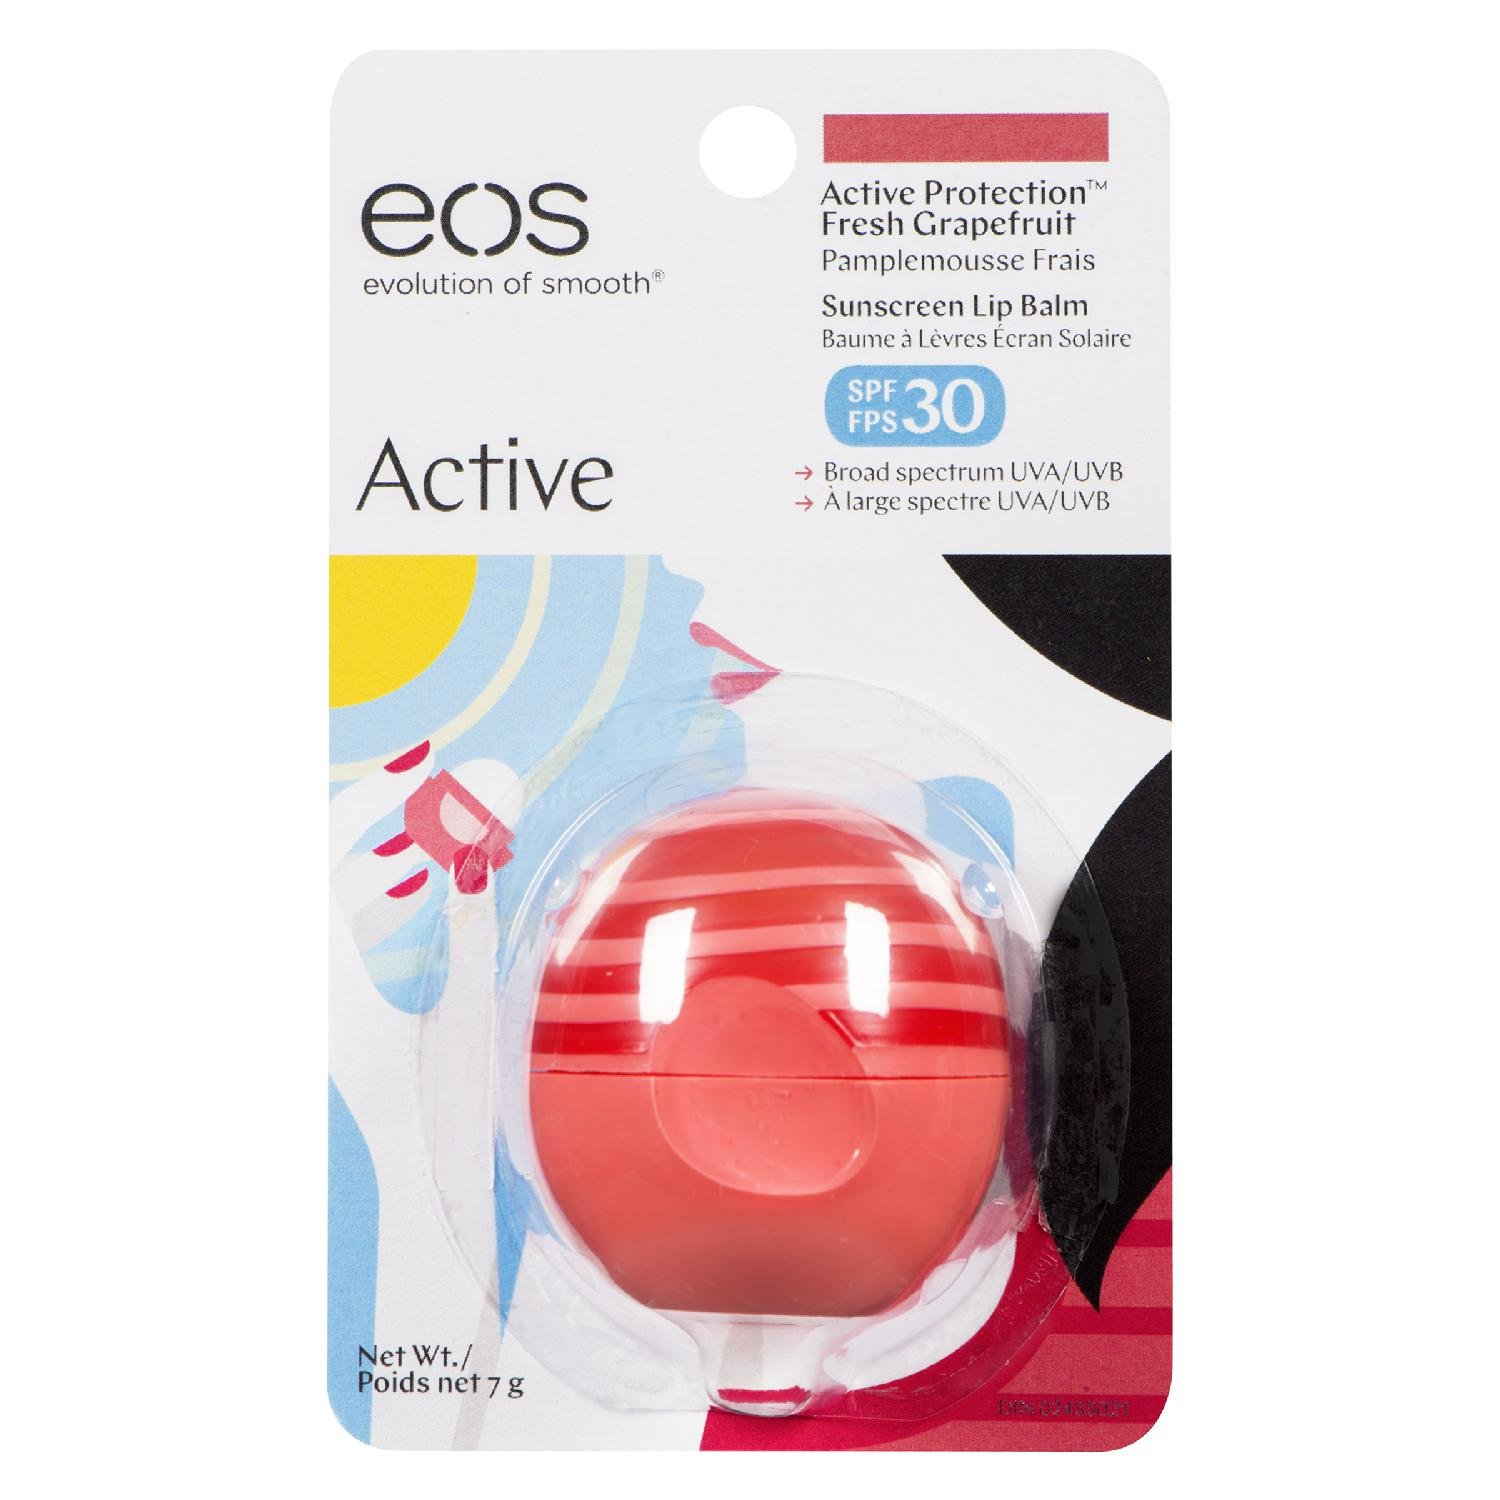 eos Medicating Cooling Chamomile Lip Balm With Menthol, 7g, Pack of 1 ANB Canada